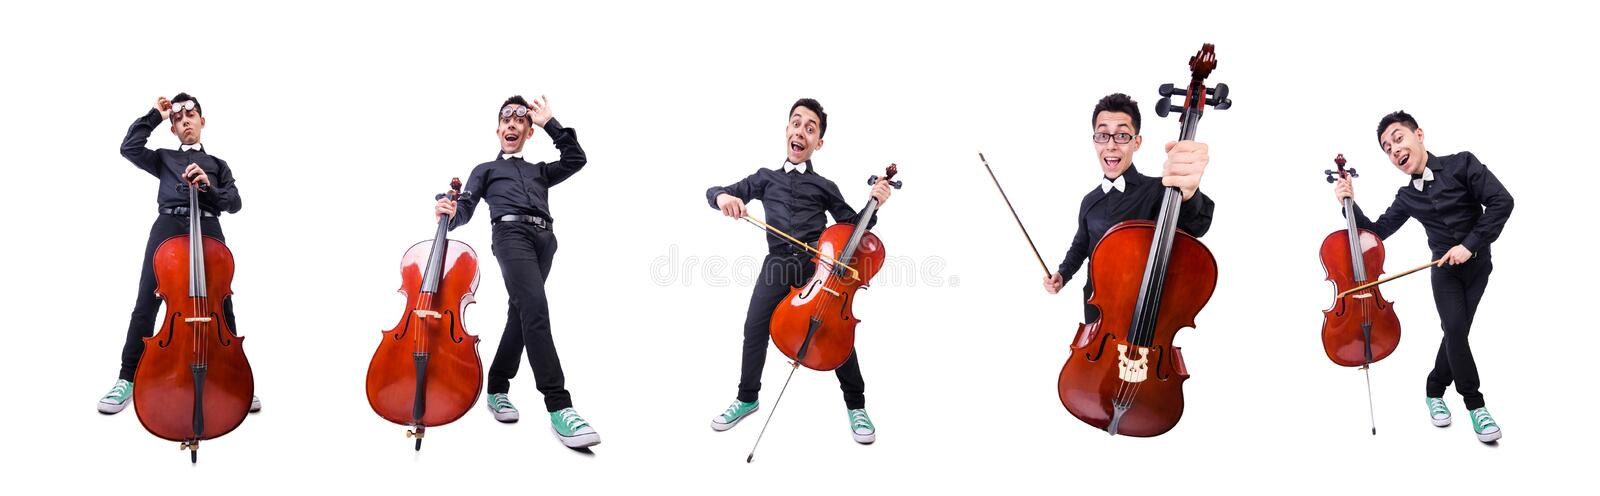 Funny man with violin on white royalty free stock images